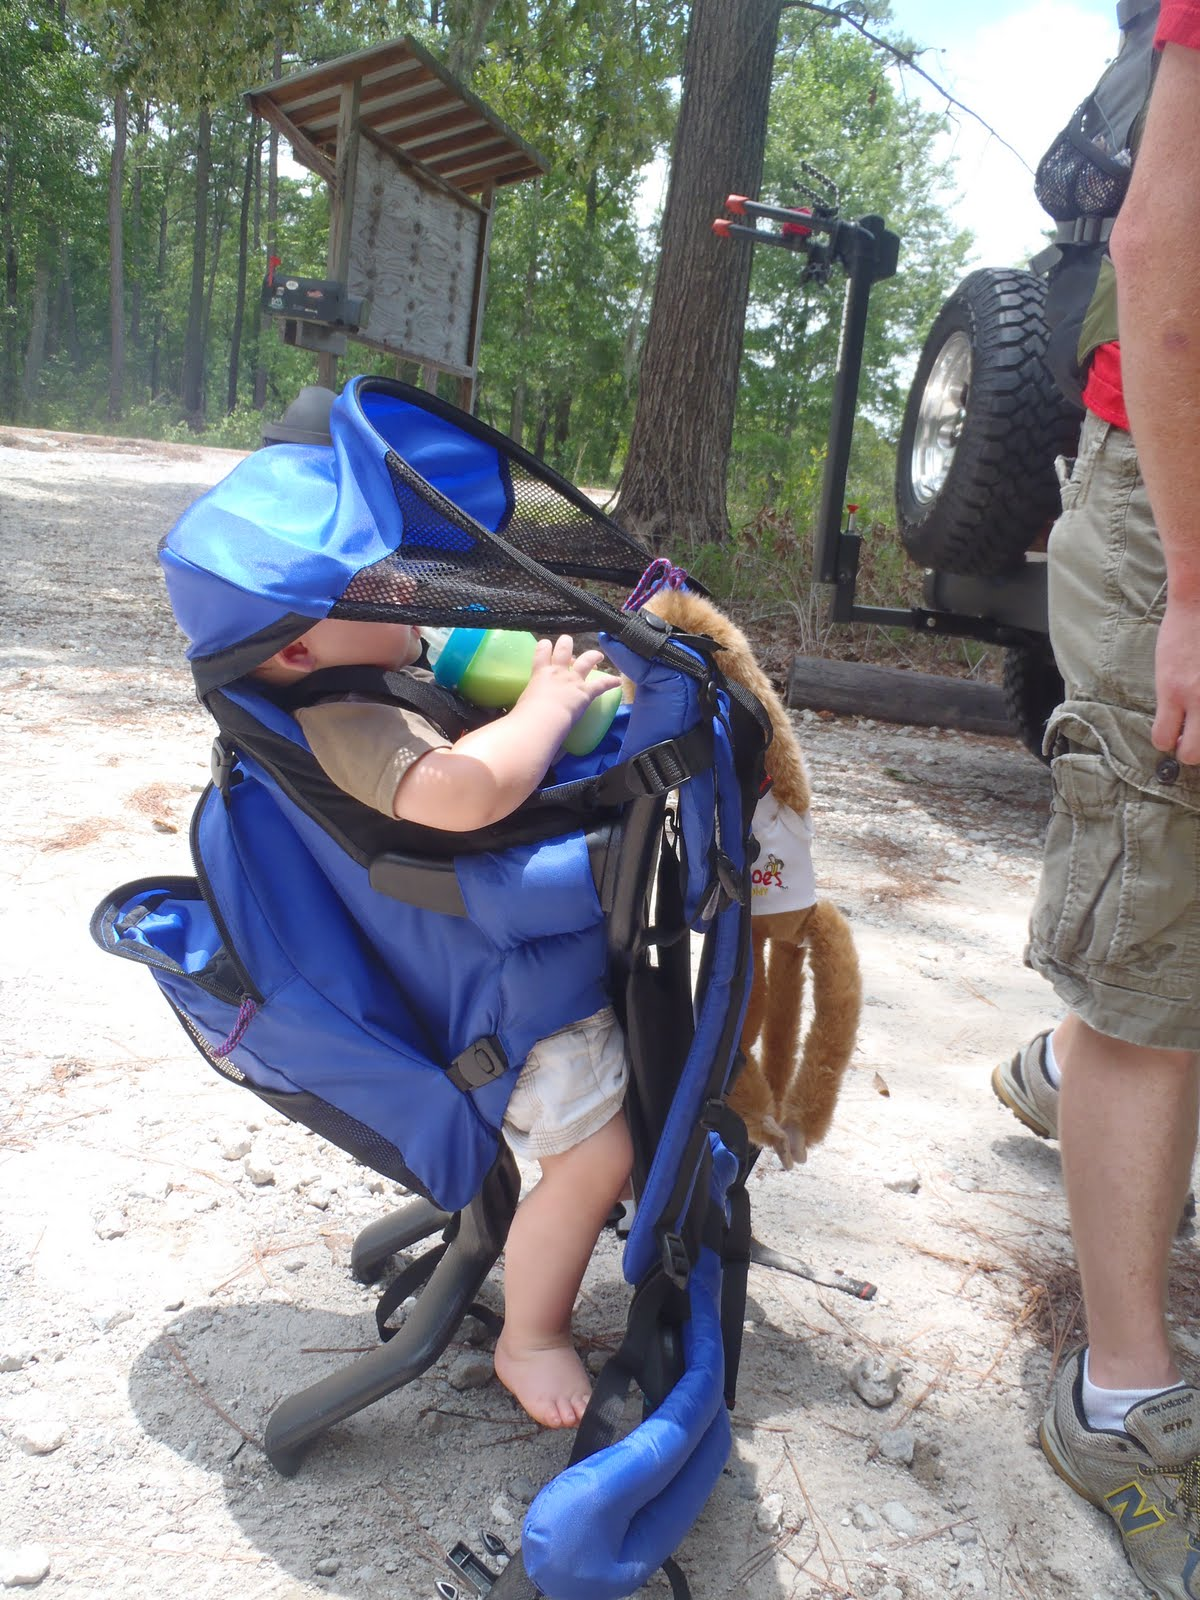 Hiking Backpack For Toddlers xKChkQDY